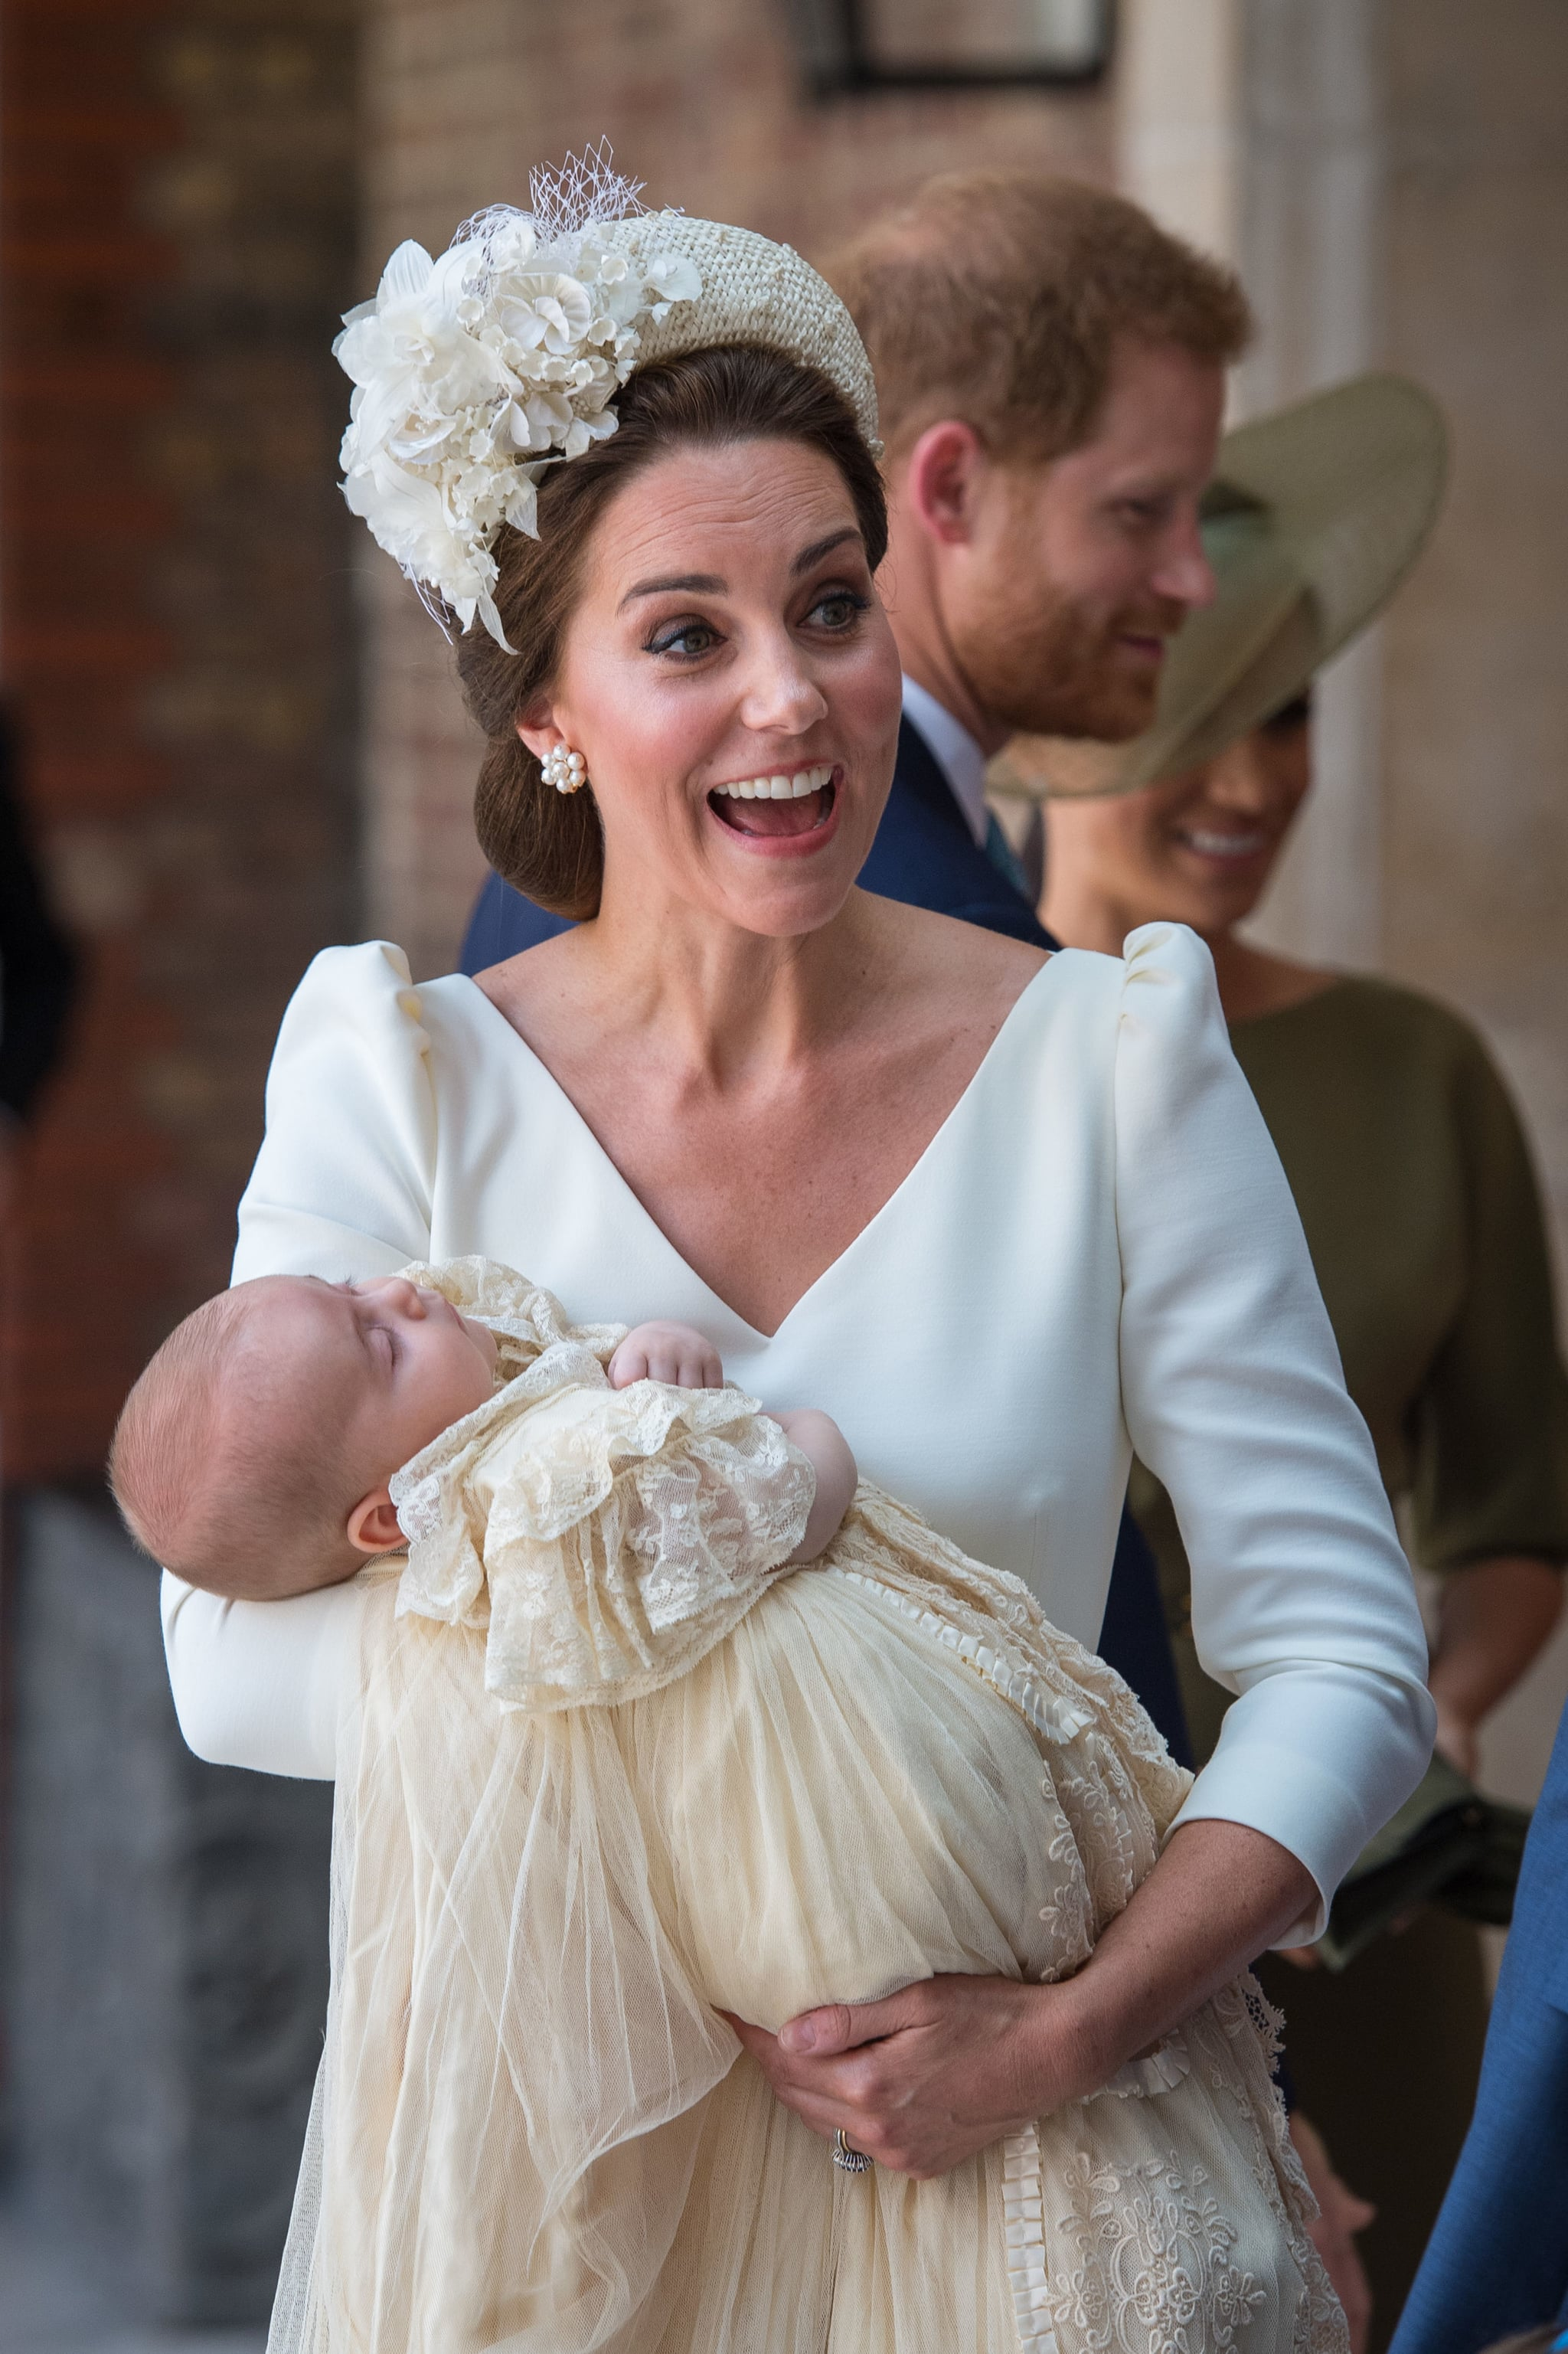 LONDON, ENGLAND - JULY 09: Catherine, Duchess of Cambridge carries Prince Louis of Cambridge at his christening service at St James's Palace on July 09, 2018 in London, England. (Photo by Dominic Lipinski - WPA Pool/Getty Images)